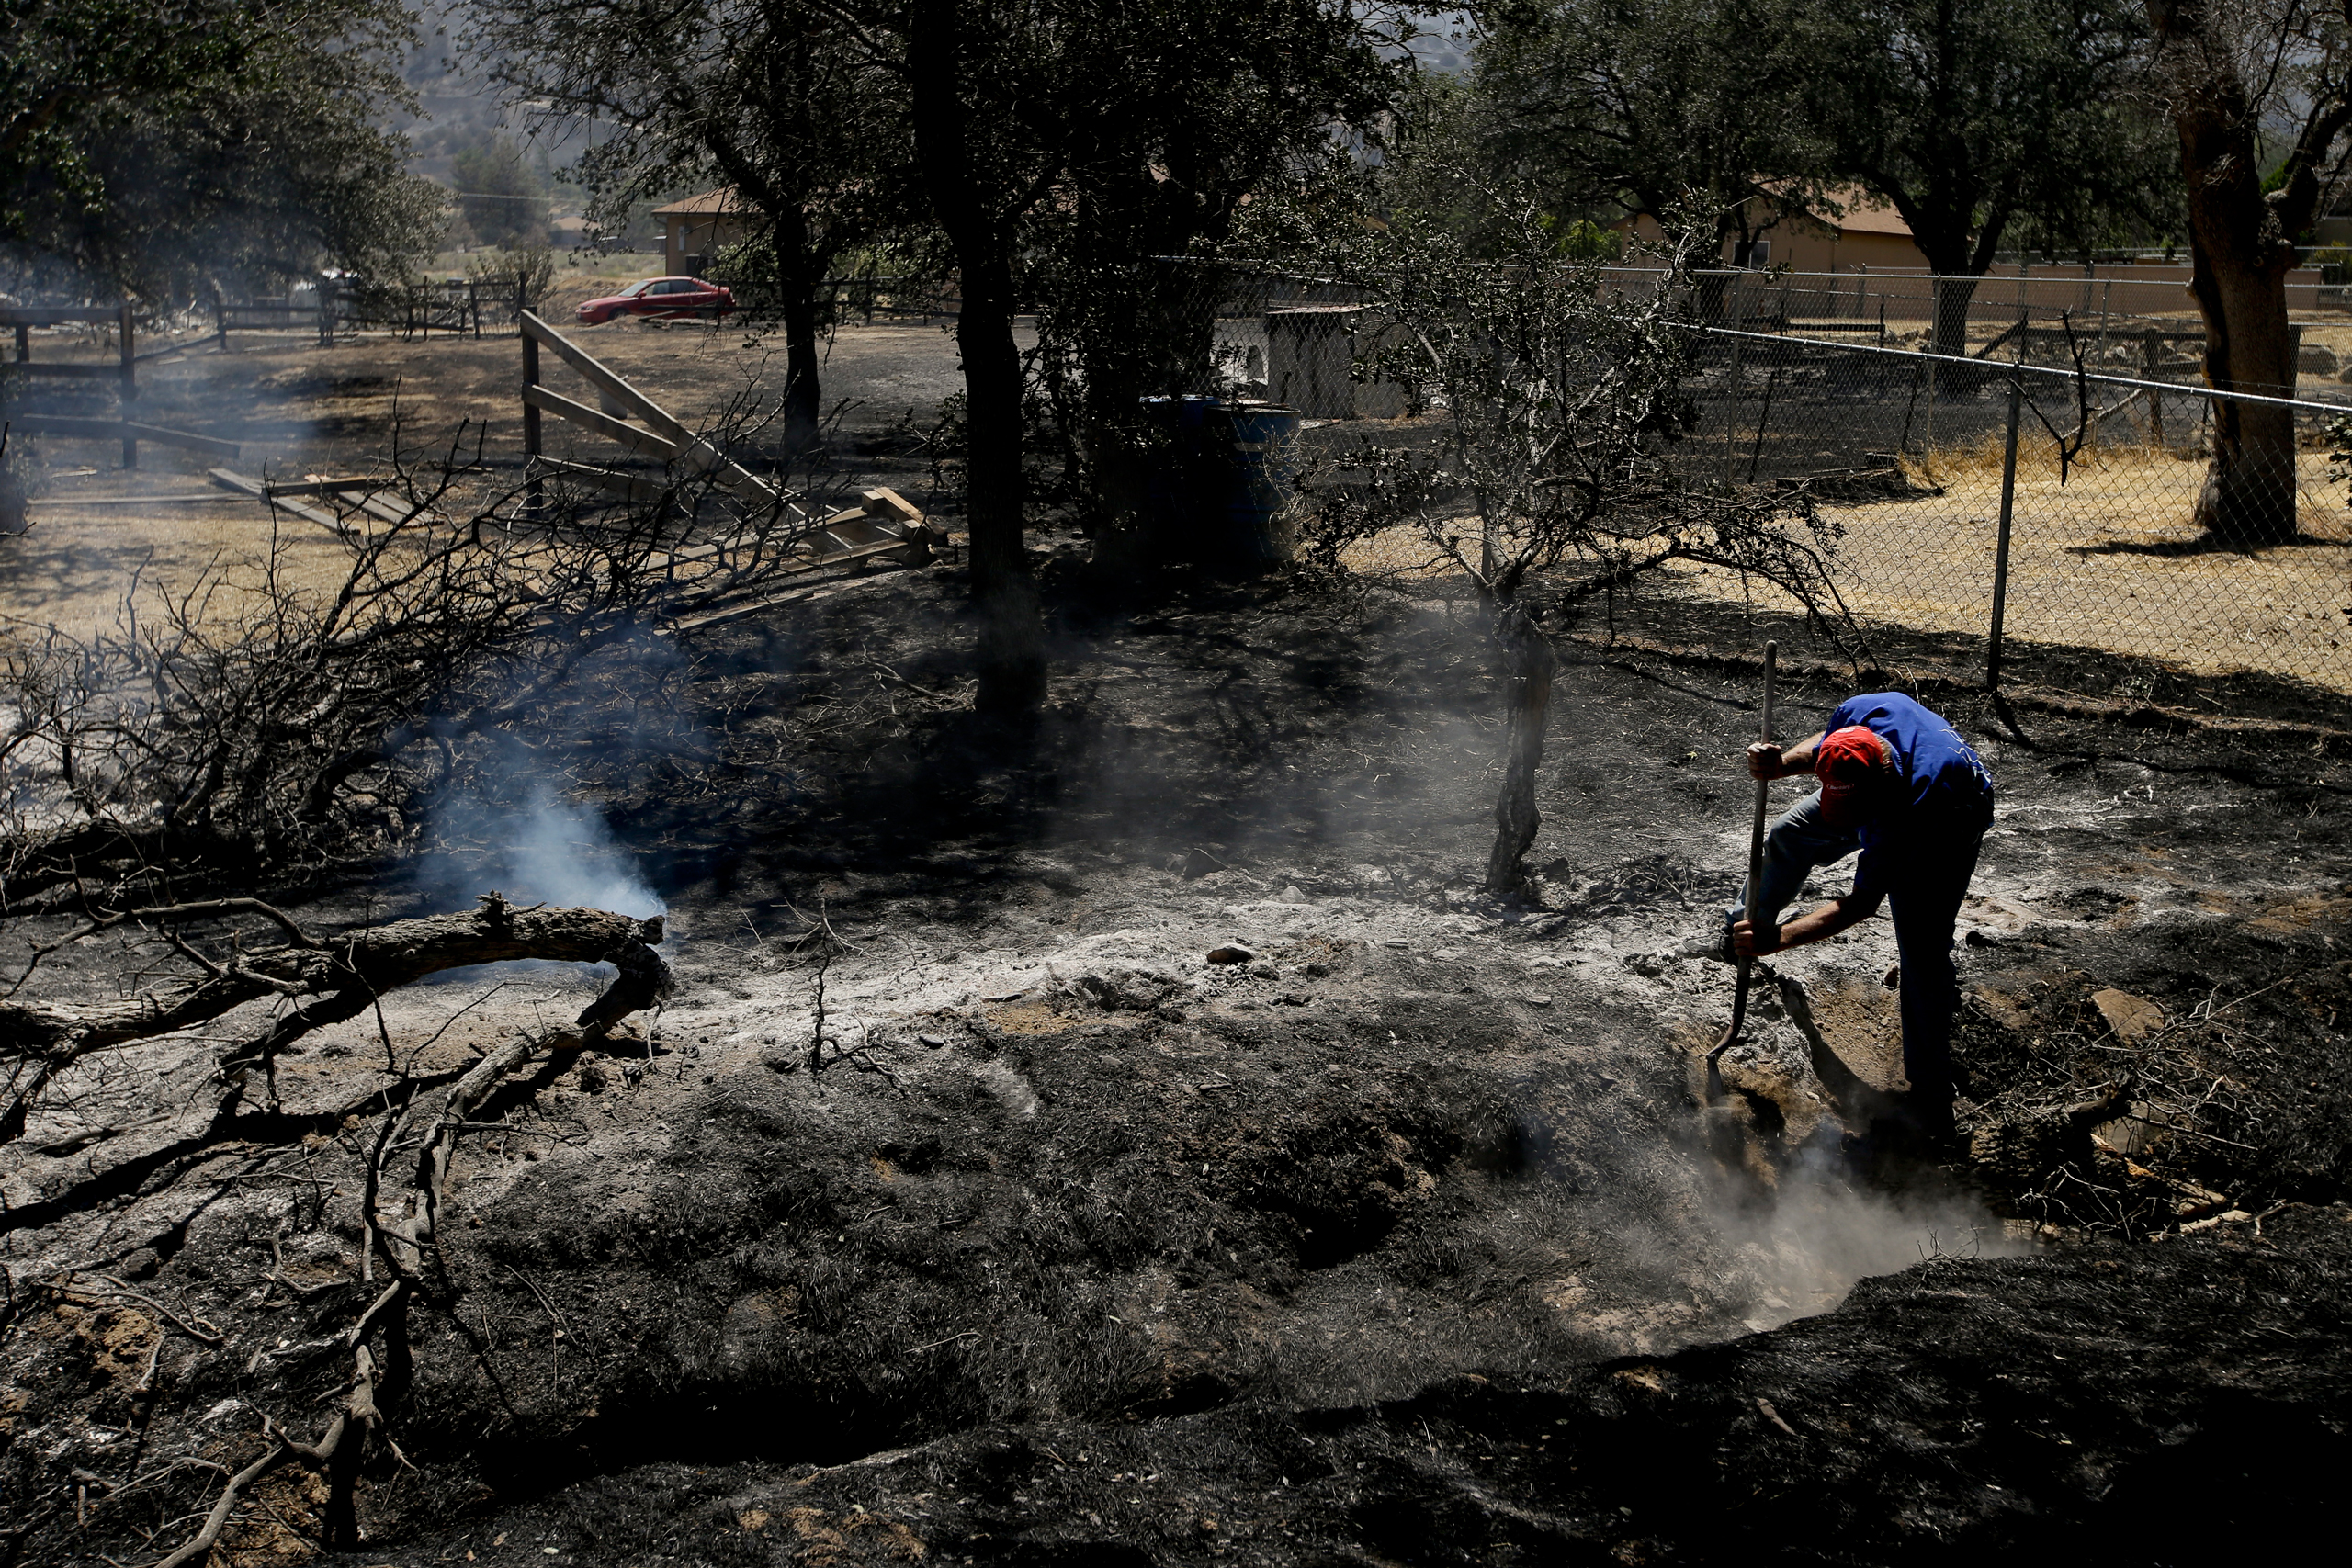 Alan Germain puts out hotspots on his neighbor's property destroyed by a wildfire near Lake Isabella, Calif., on June 24, 2016.